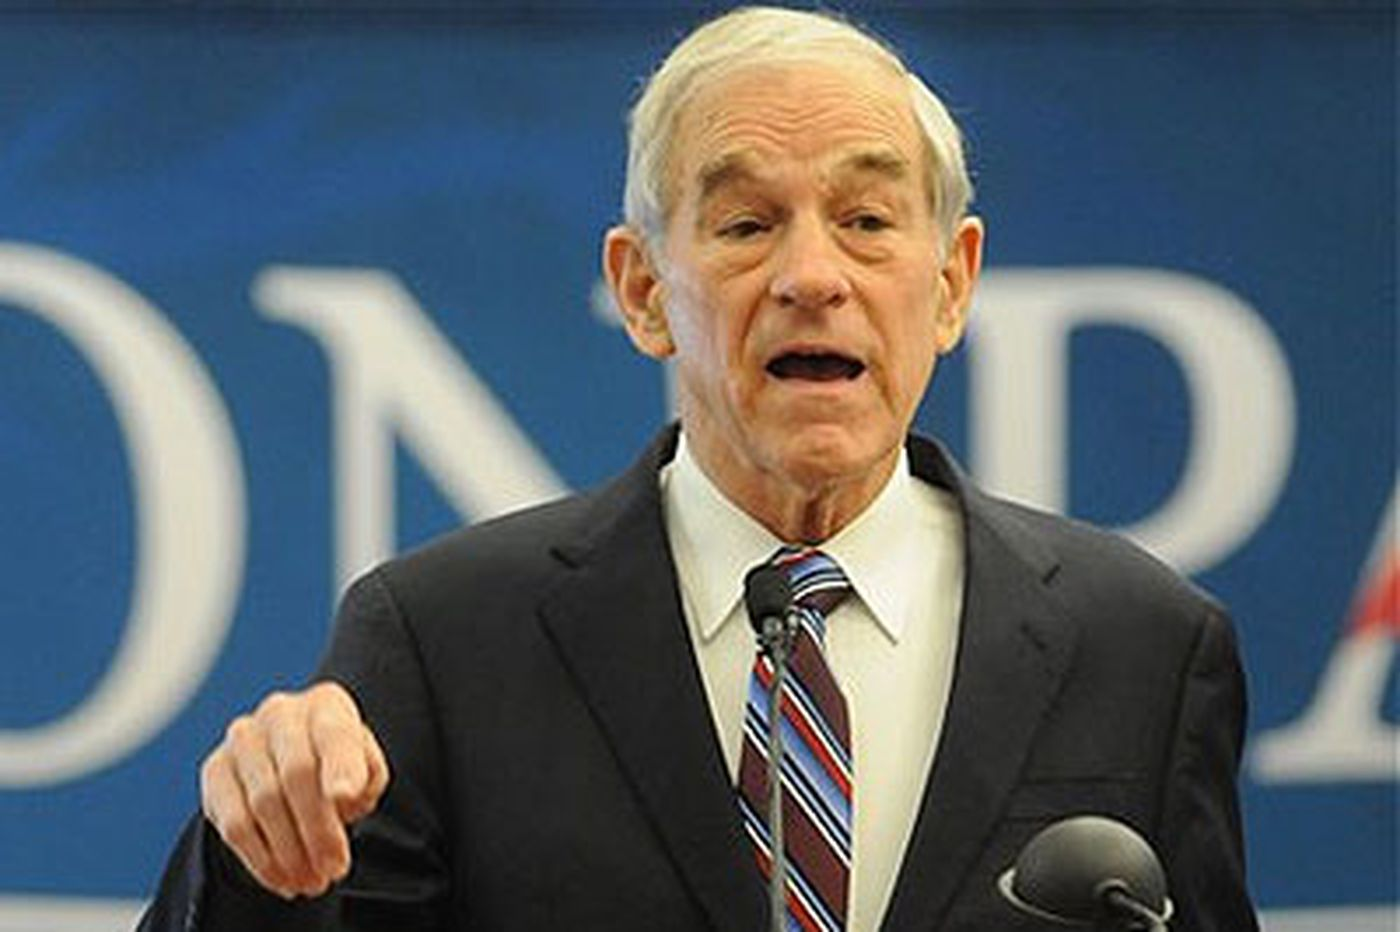 Philadelphia rain can't dampen the enthusiasm at a Ron Paul rally